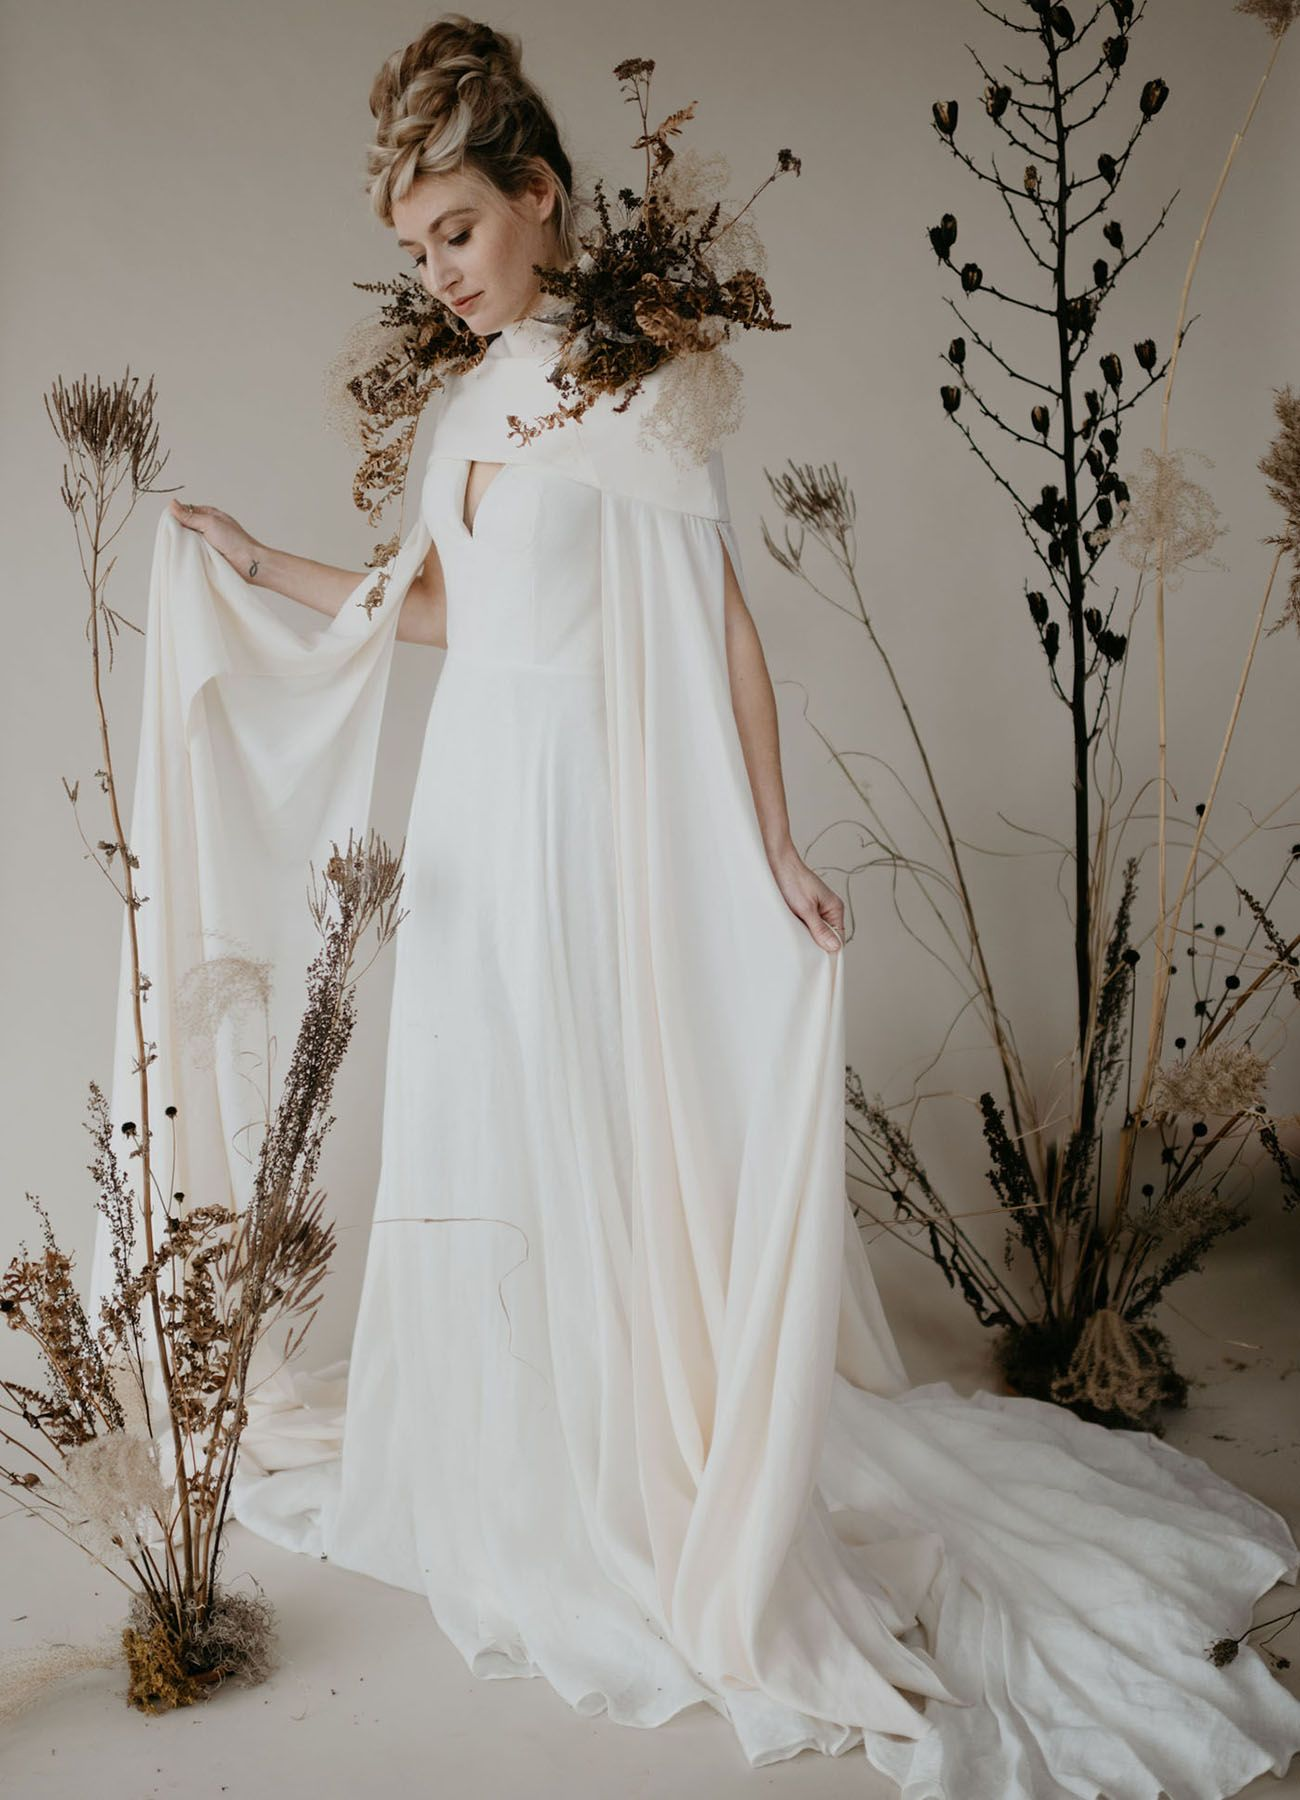 Dried Textural Florals Sleek Stylings Winter Inspiration For The Modern Bride Green Wedding Shoes Stylish Wedding Dresses Wedding Dress Boutiques Bridal Cape [ 1800 x 1300 Pixel ]